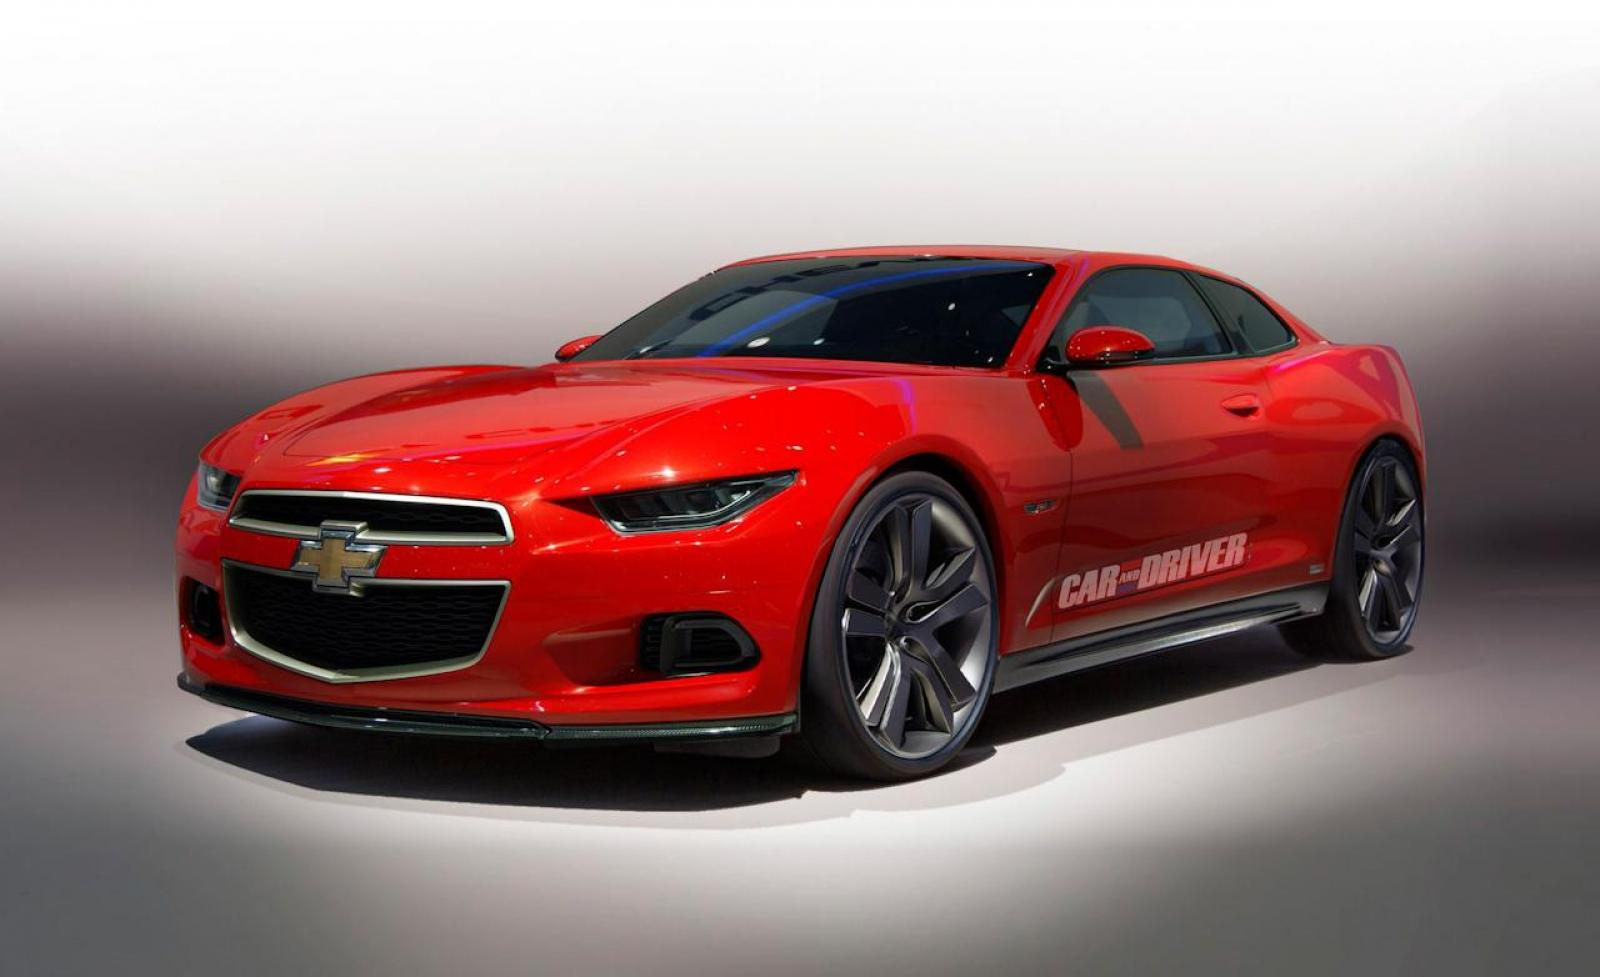 2016 chevrolet camaro information and photos zombiedrive. Black Bedroom Furniture Sets. Home Design Ideas